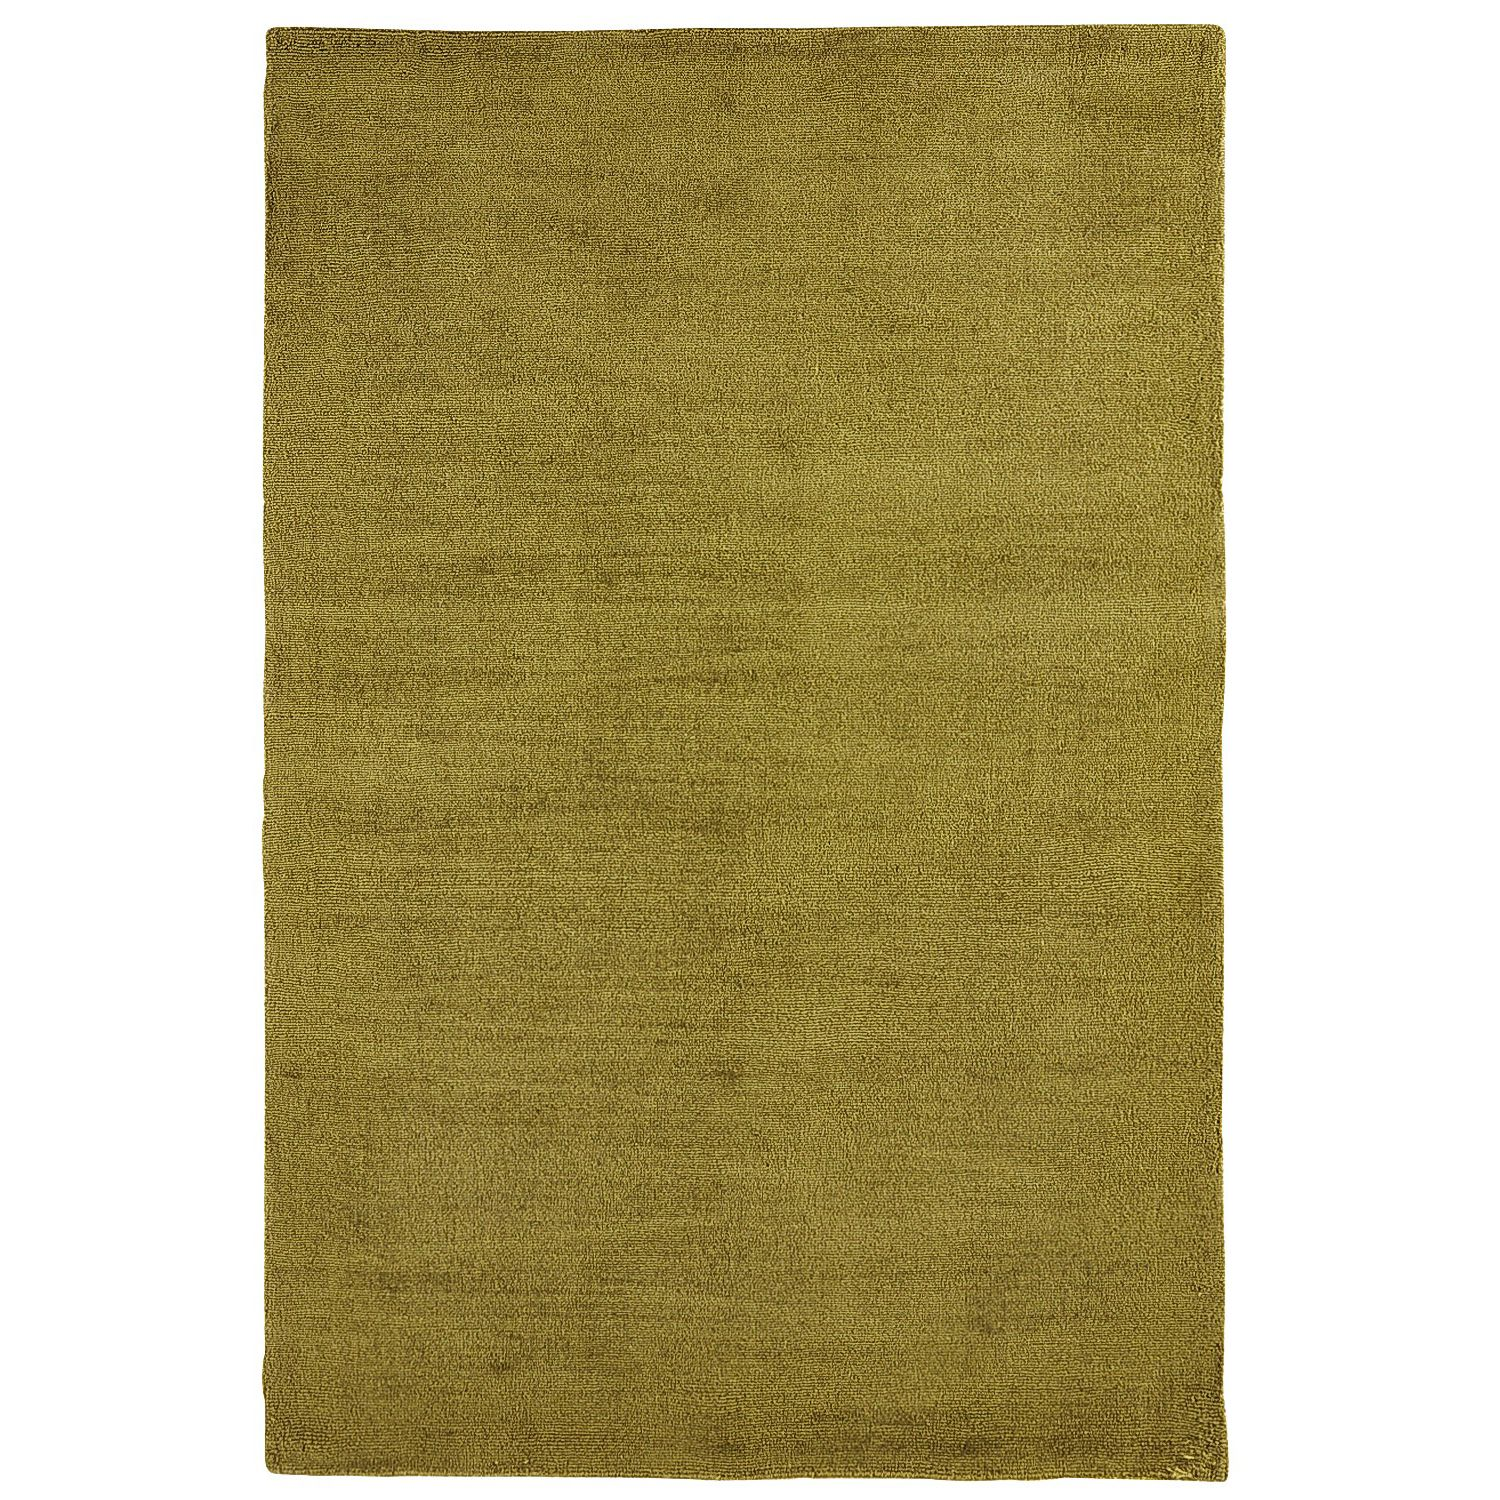 Green Dhara Solid Rug - Moss 8x10 - Outdoor